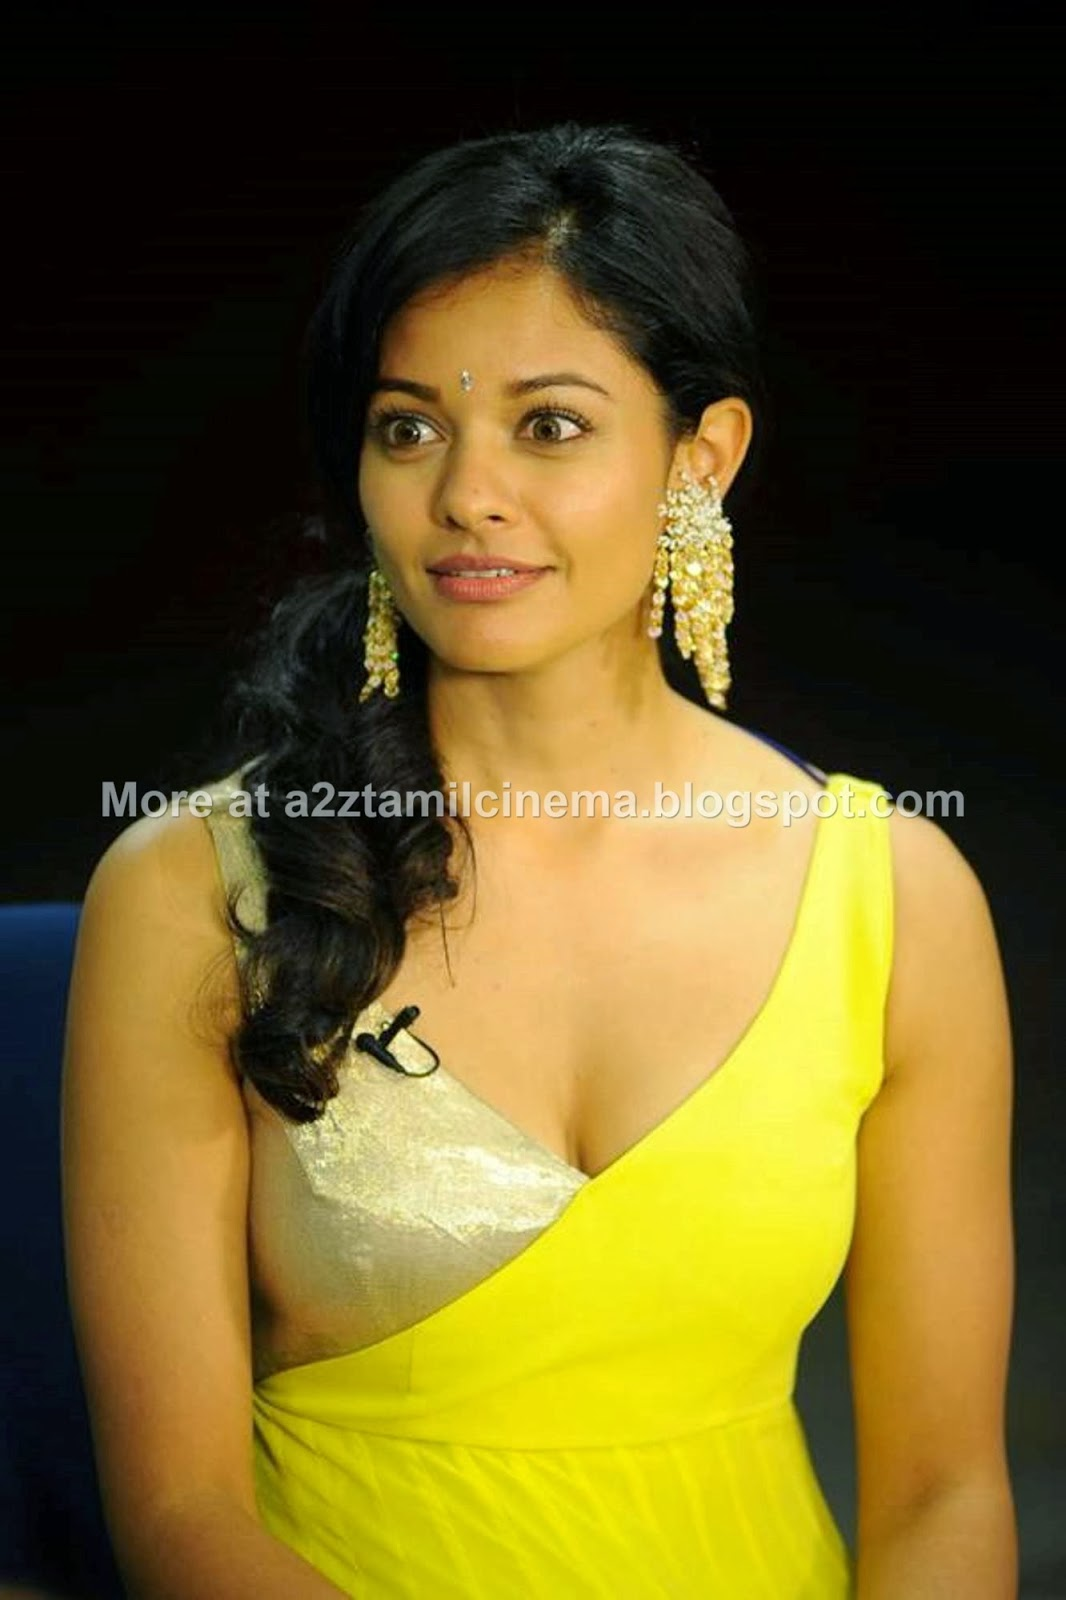 Vishwaroopam 2 Photos  Vishwaroopam 2 Images